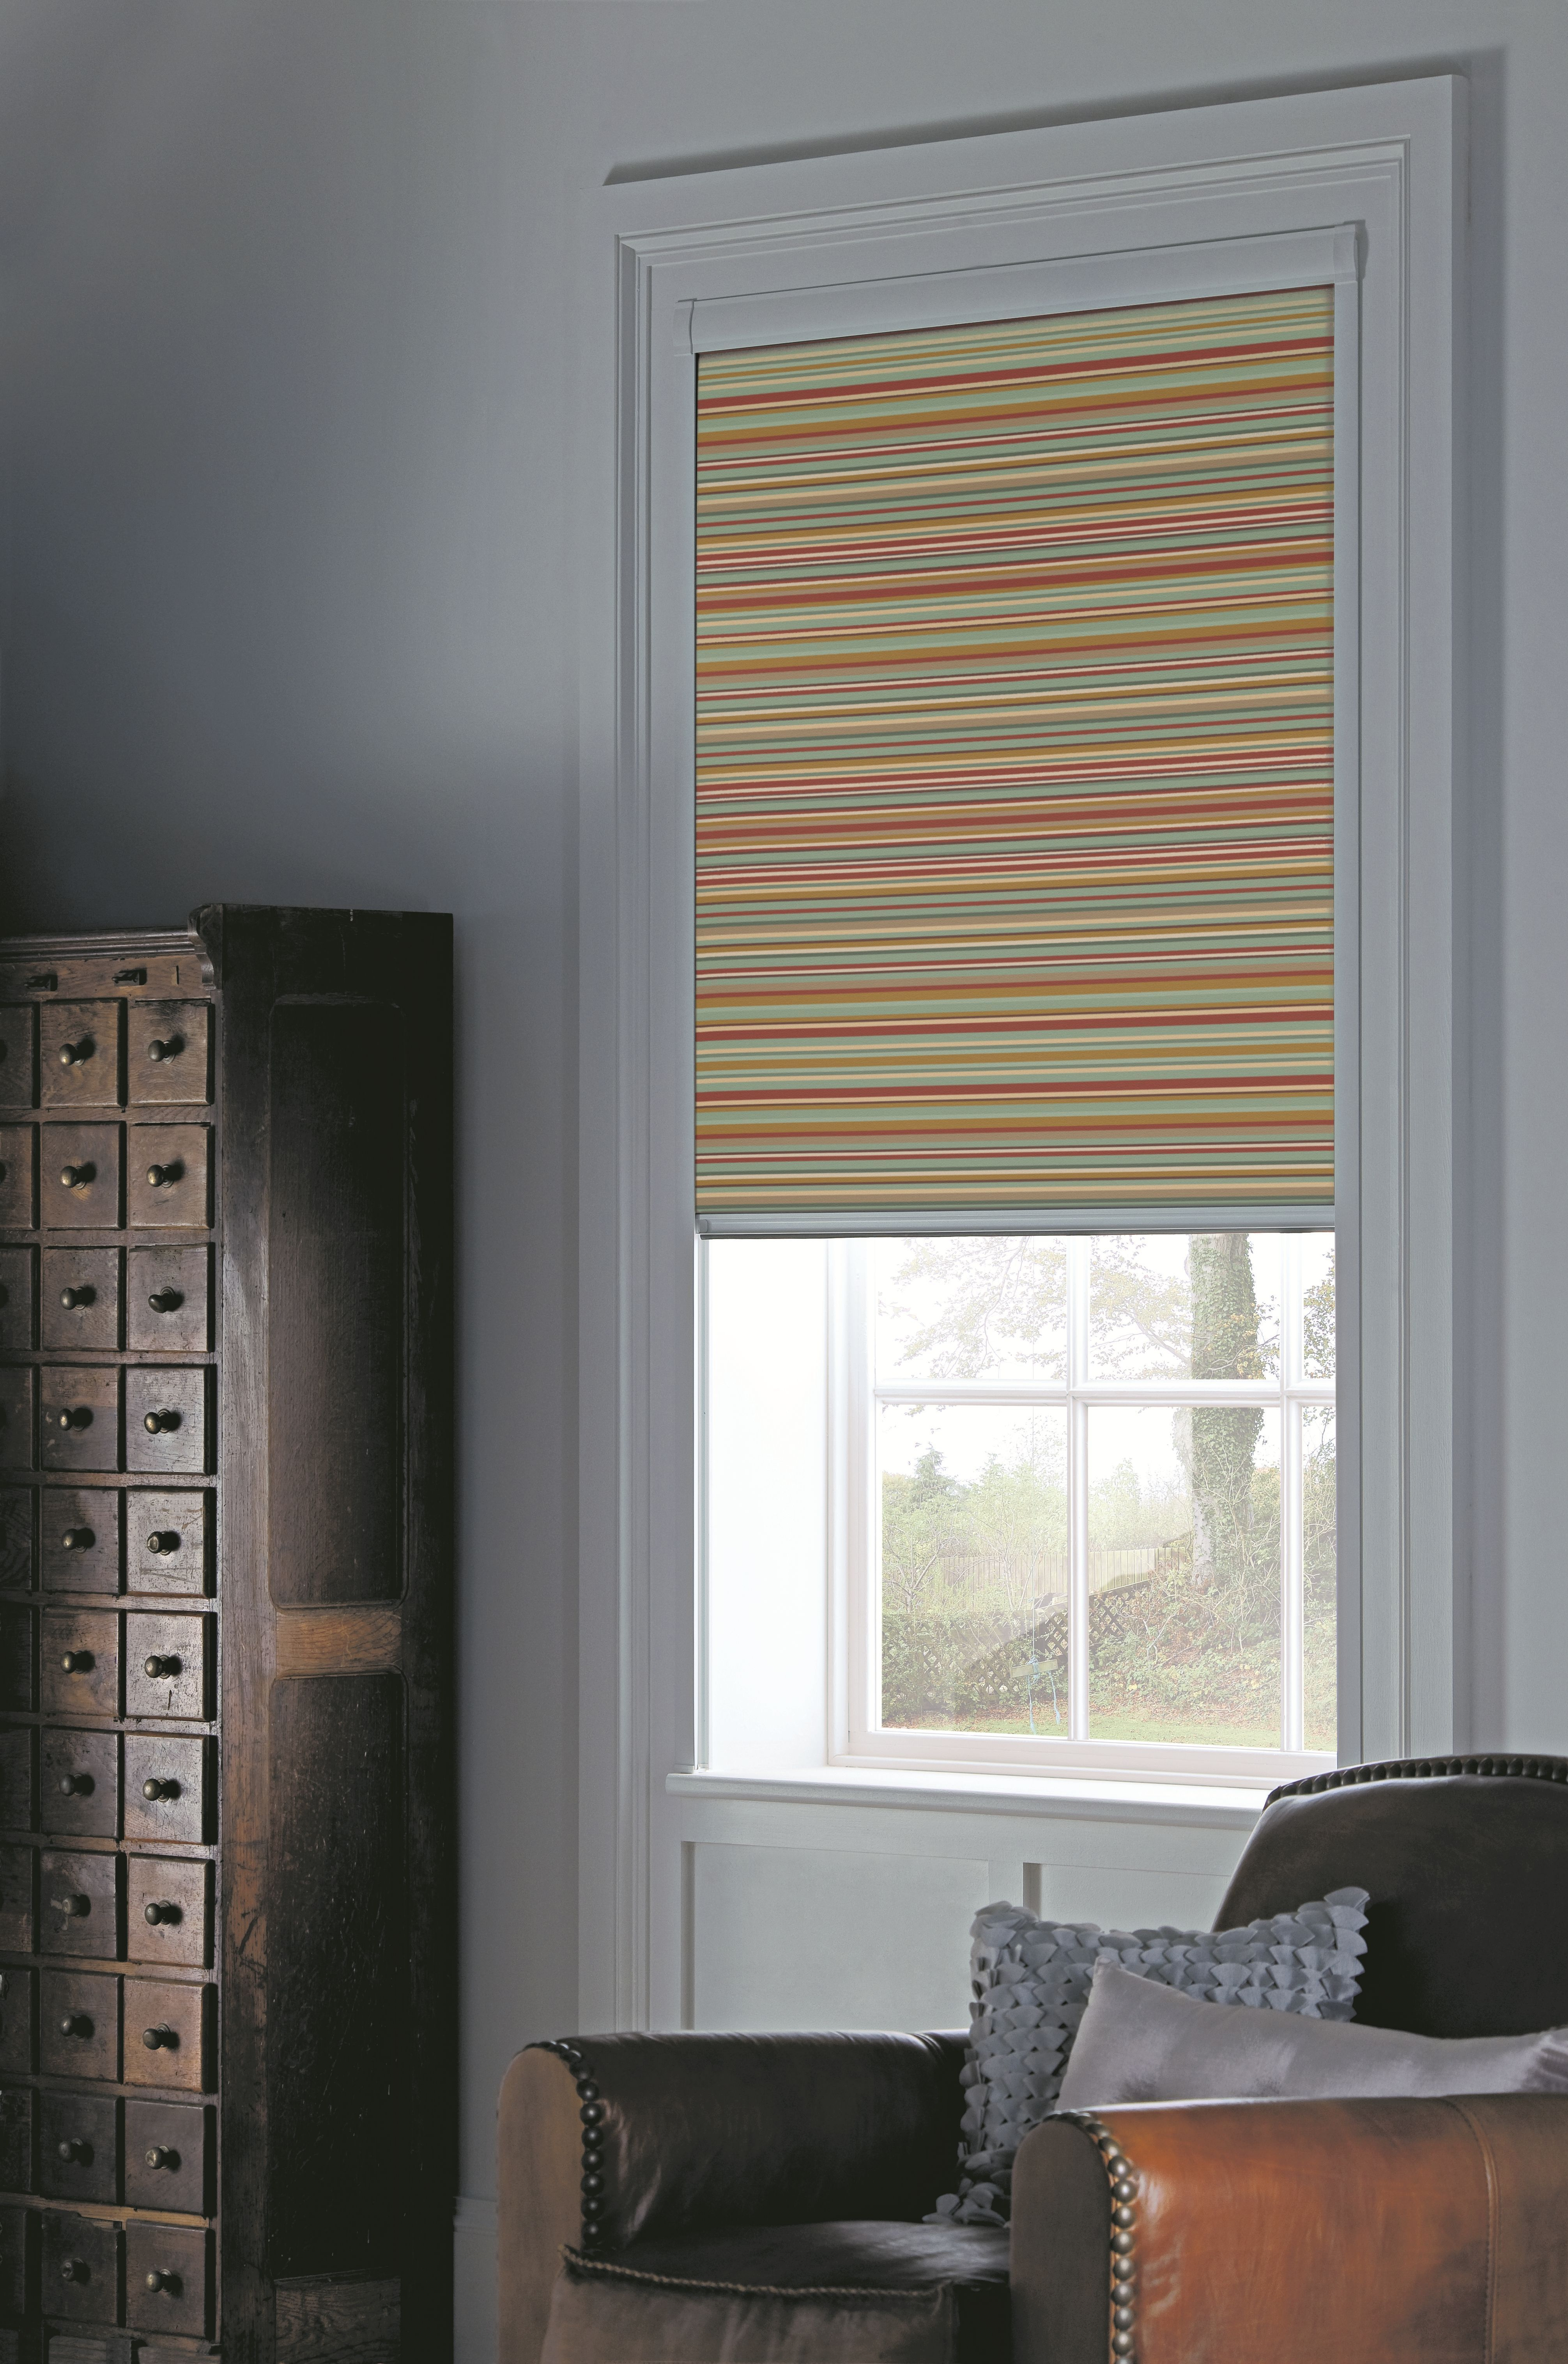 We measure and fit blackout blinds and bloc blinds blindsforwindows